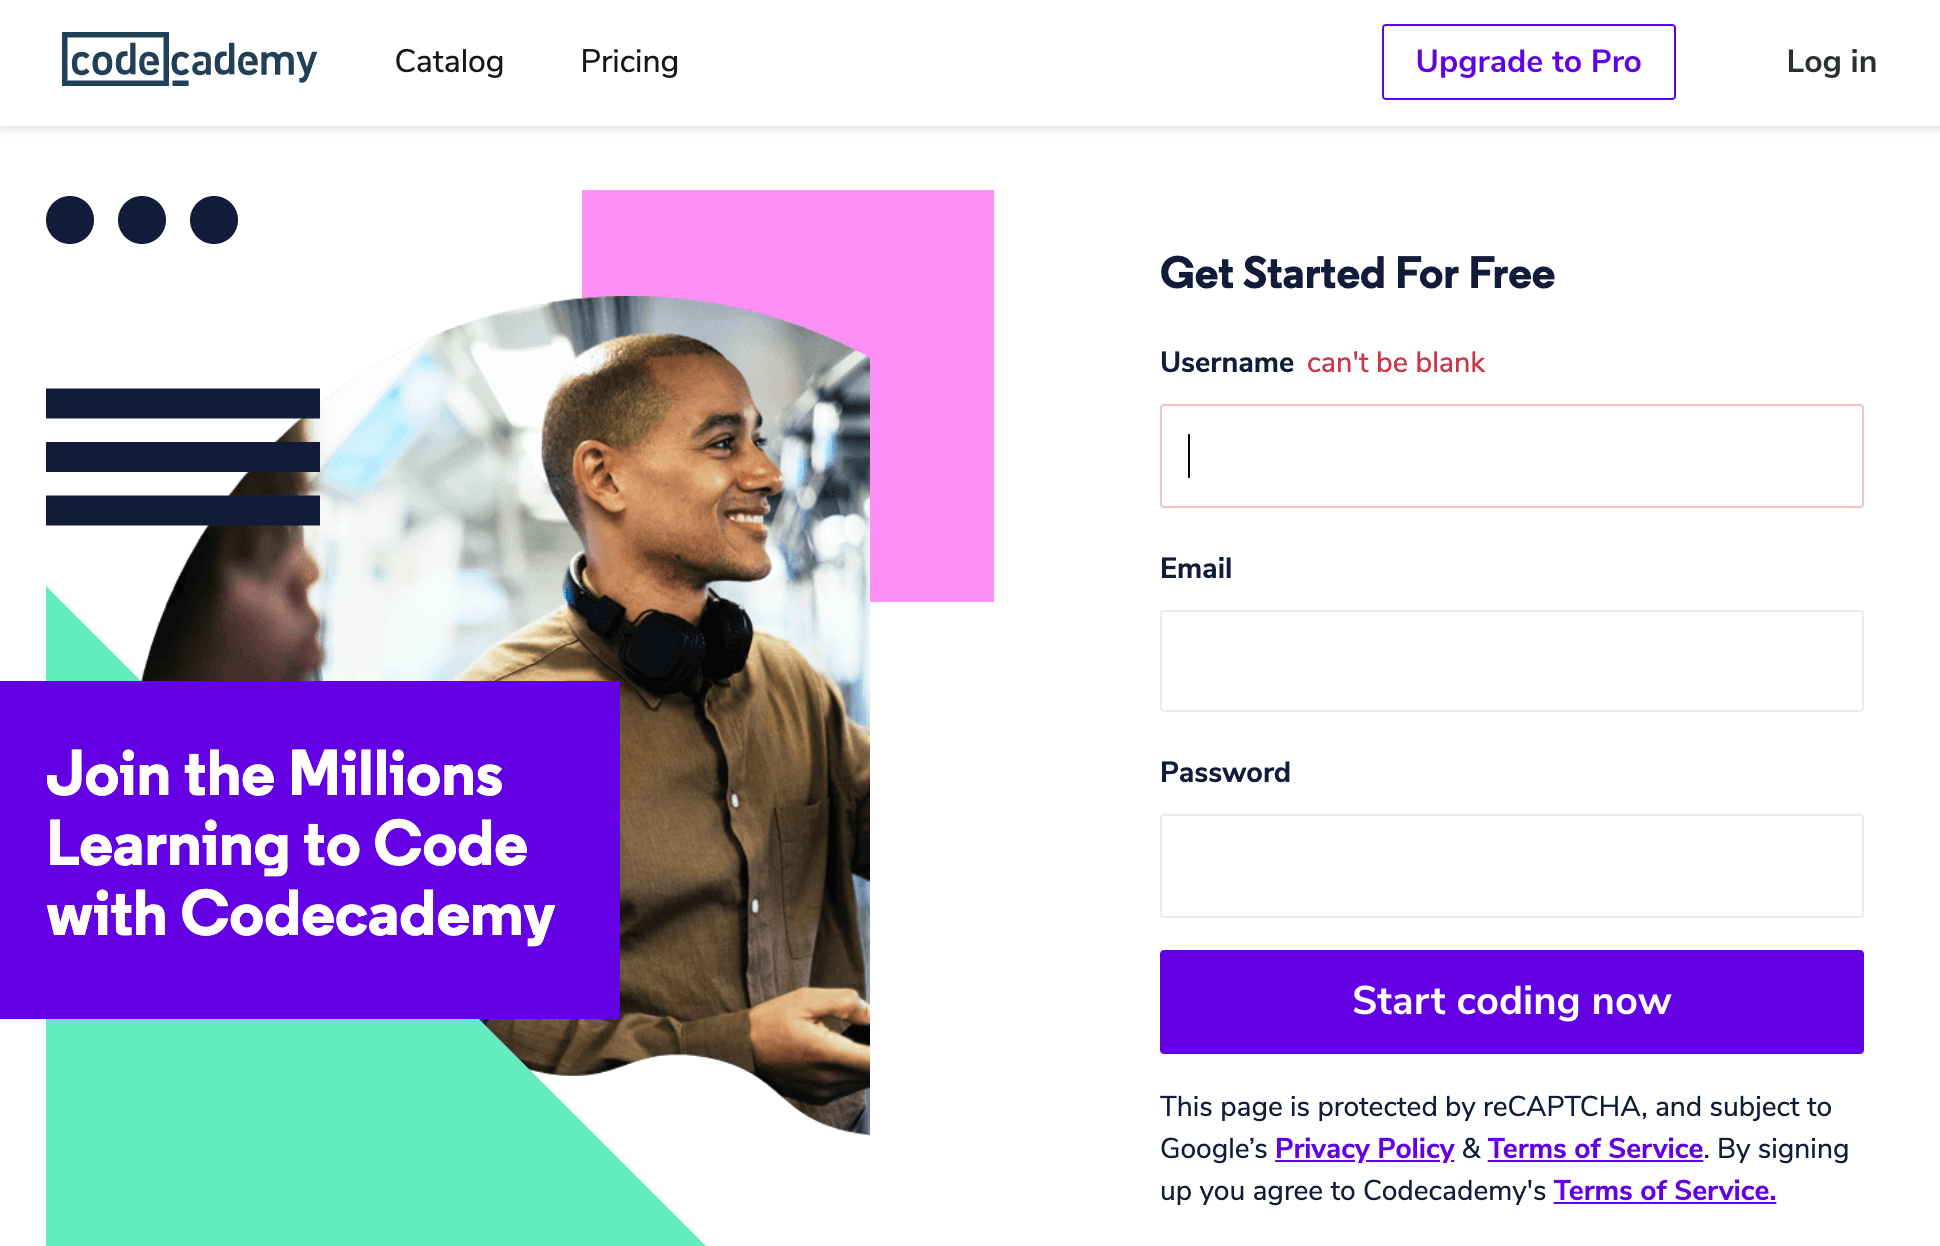 The Codecademy Homepage vs Treehouse vs Pluralsight